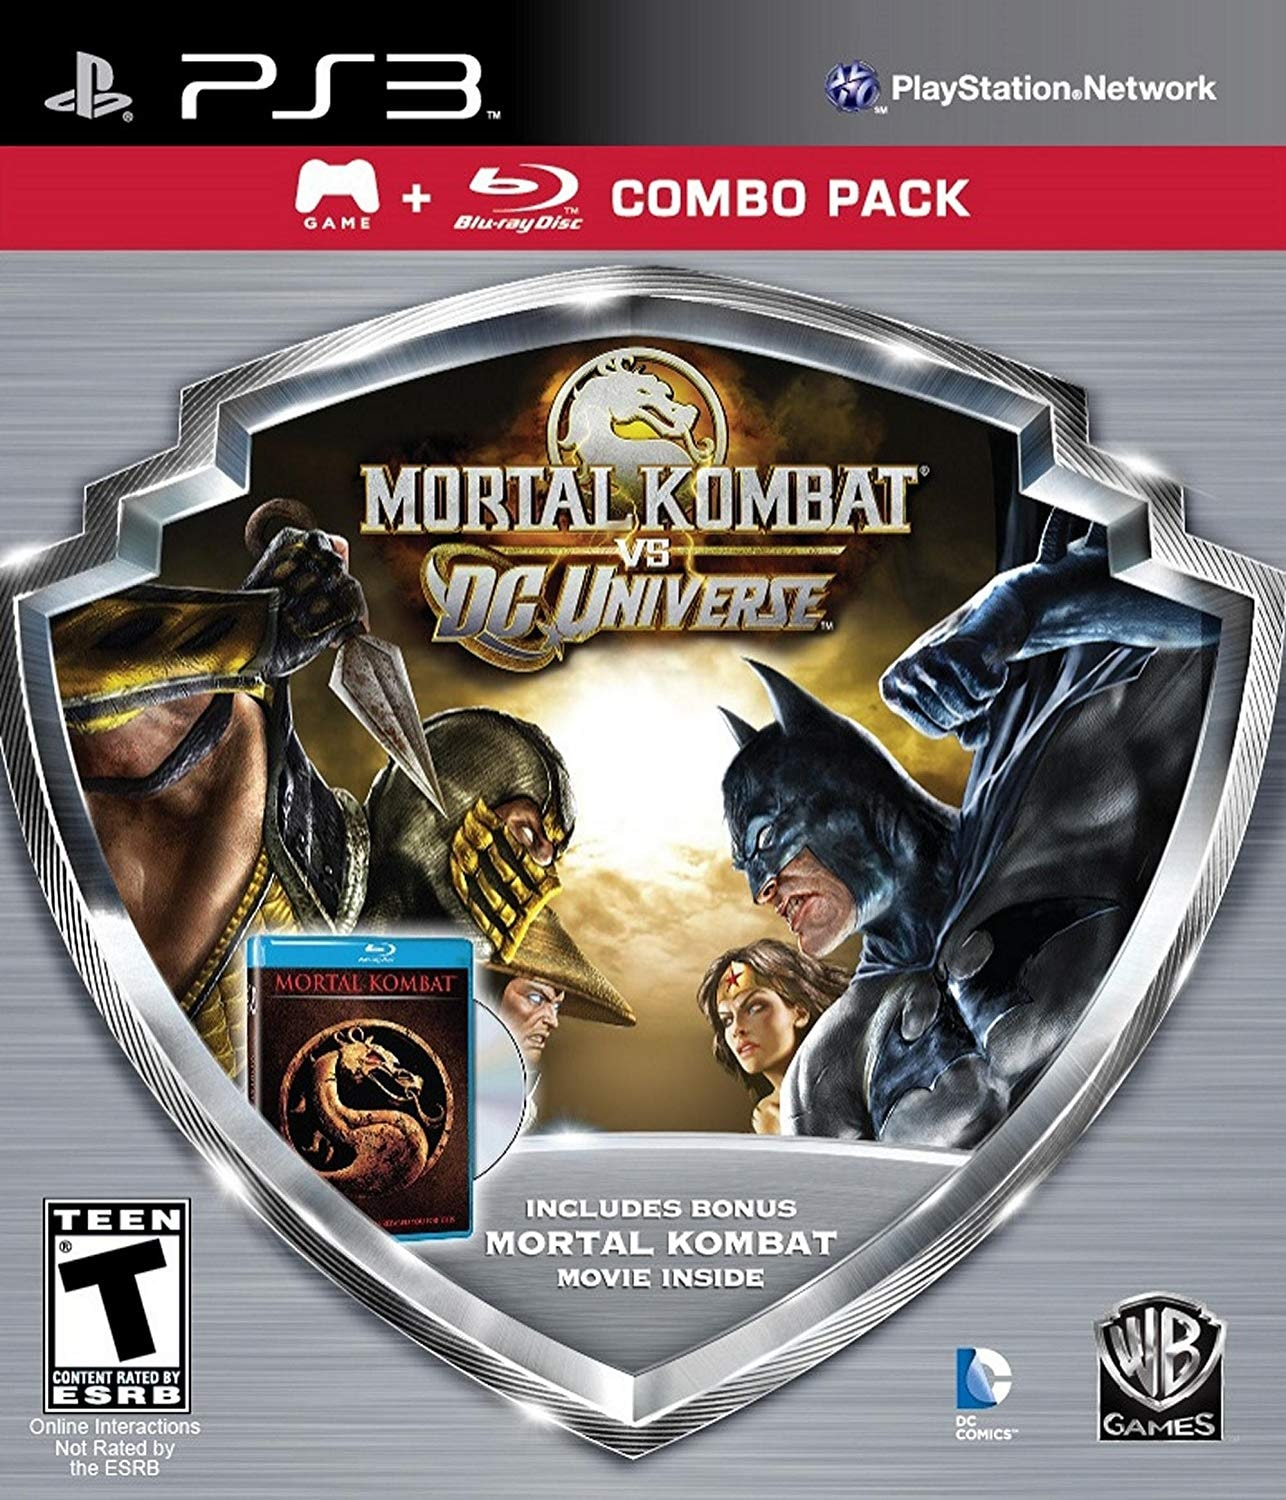 PS3 MORTAL KOMBAT VS DC UNIVERSE COMBO PACK WITH MOVIE R1 - 1